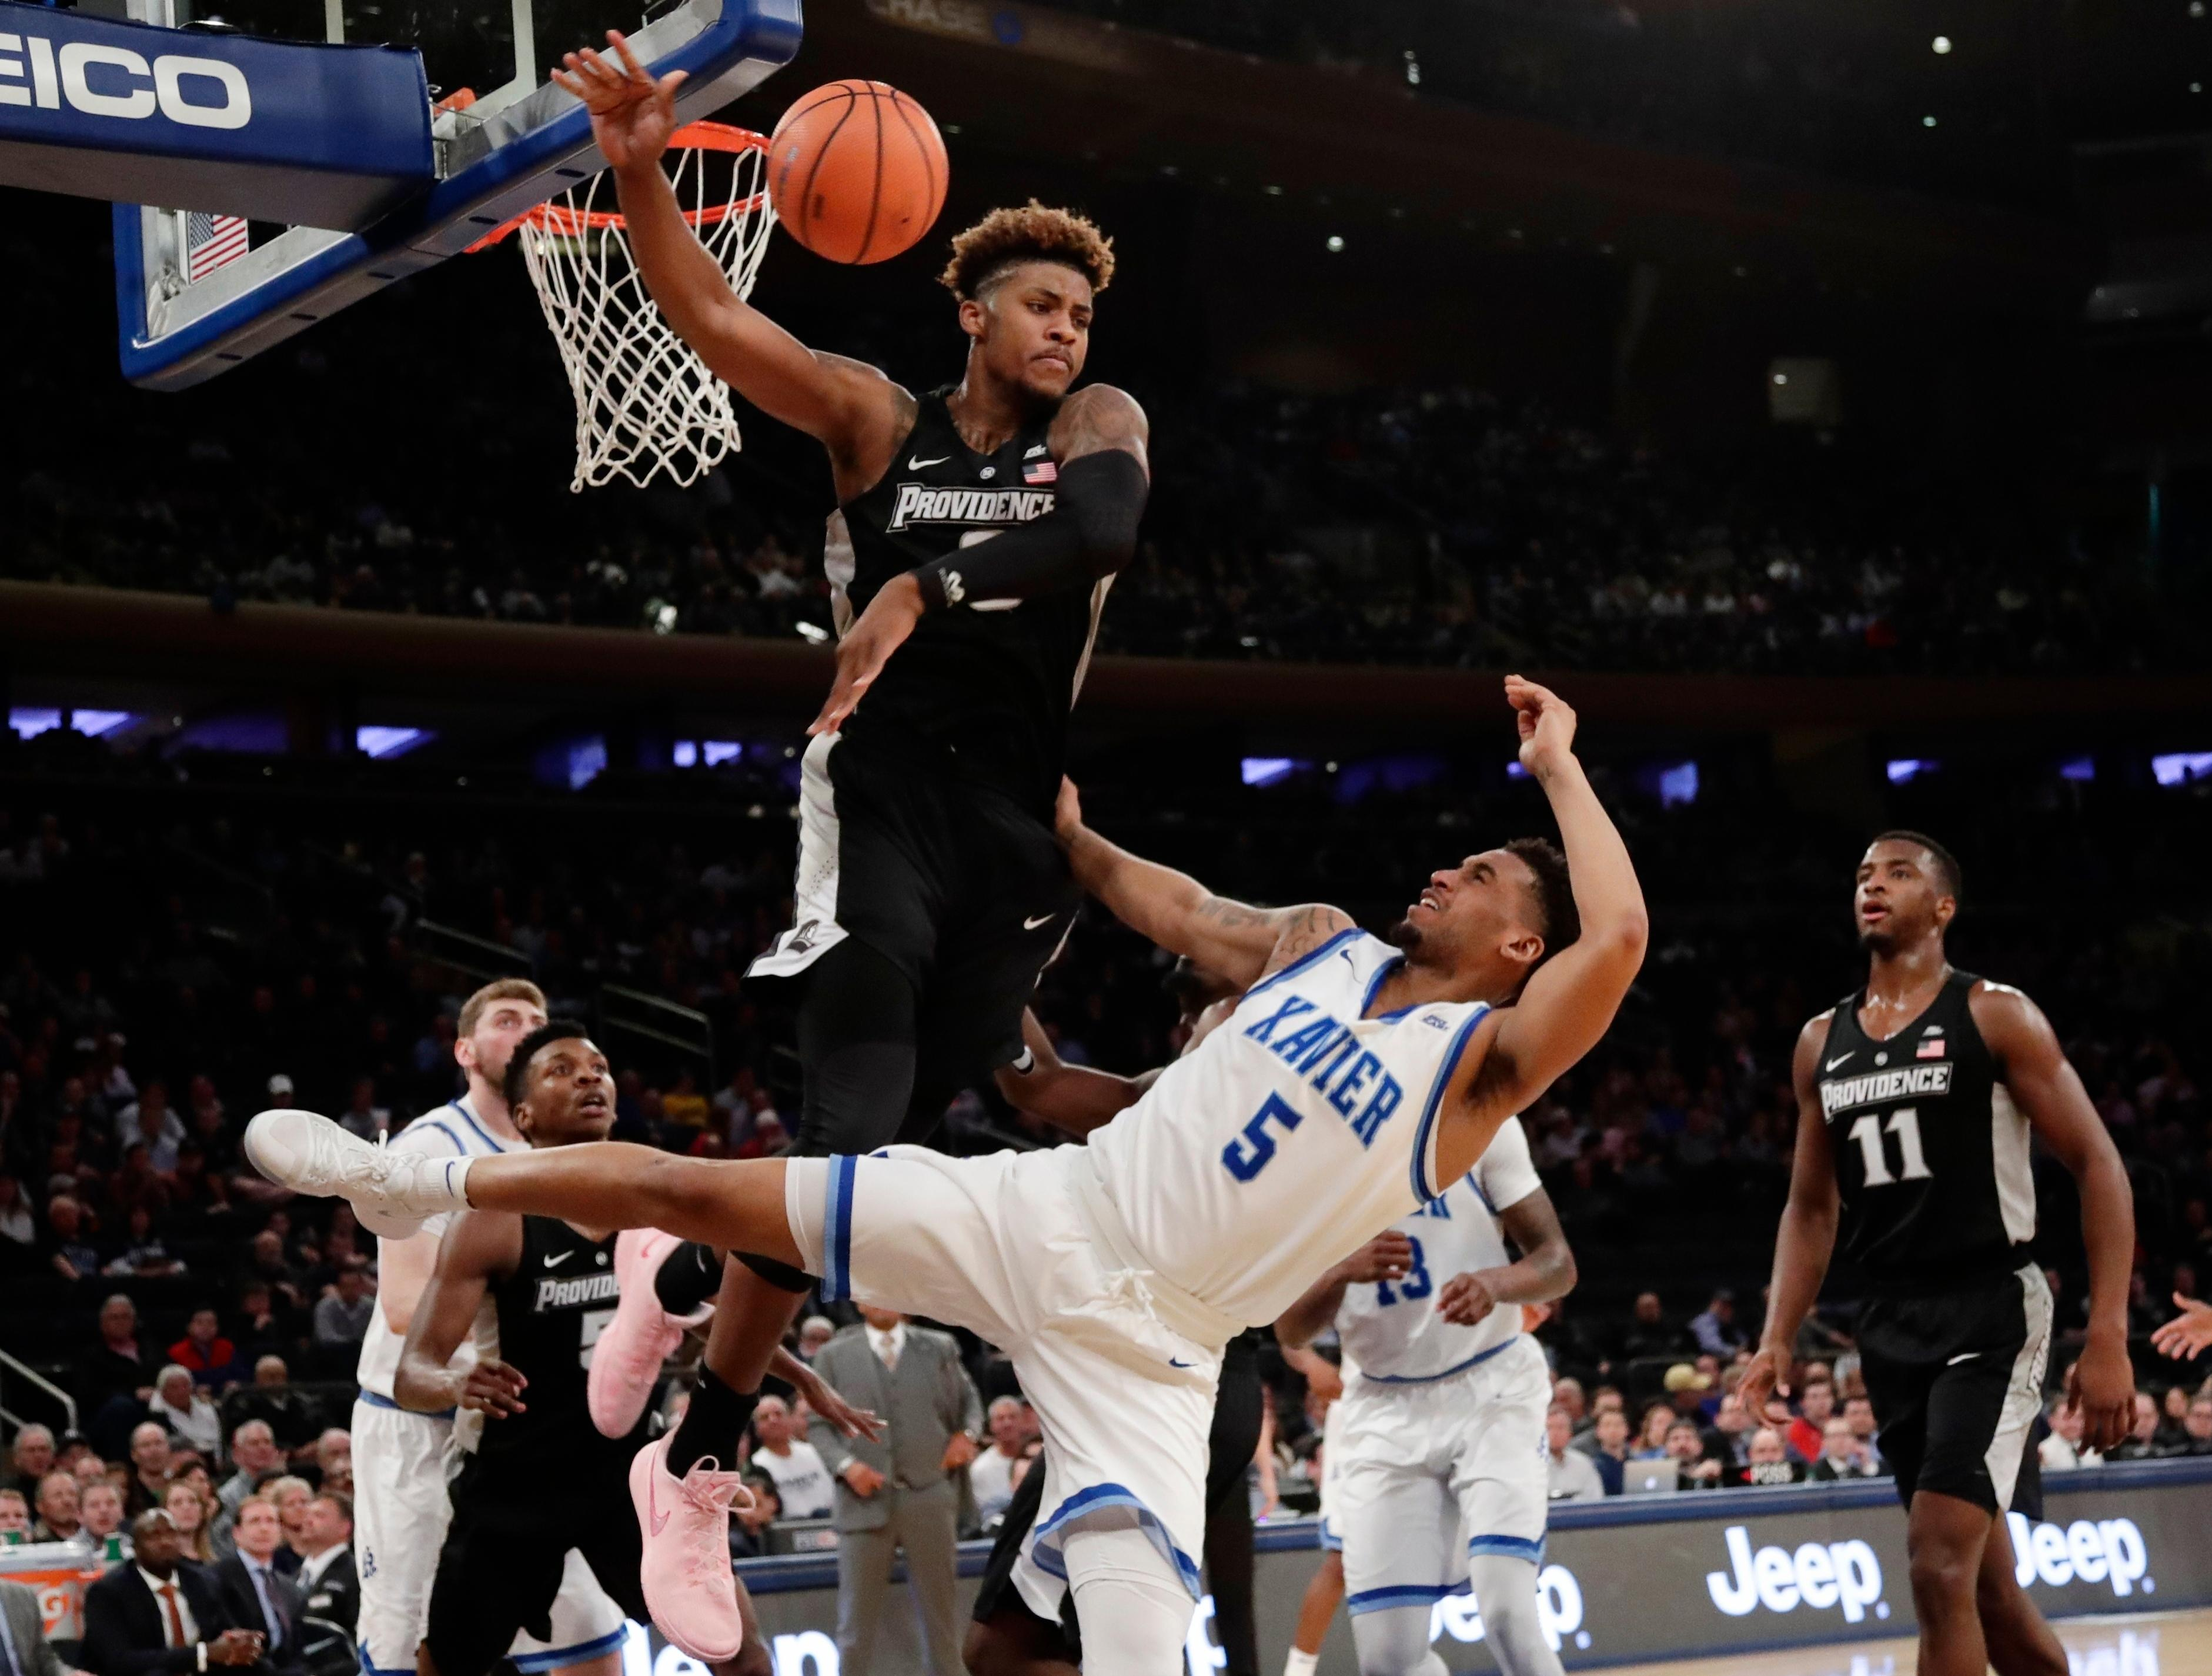 Providence's Nate Watson (0) defends against Xavier's Trevon Bluiett (5) during the first half of an NCAA college basketball game in the Big East men's tournament semifinals Friday, March 9, 2018, in New York. (AP Photo/Frank Franklin II)